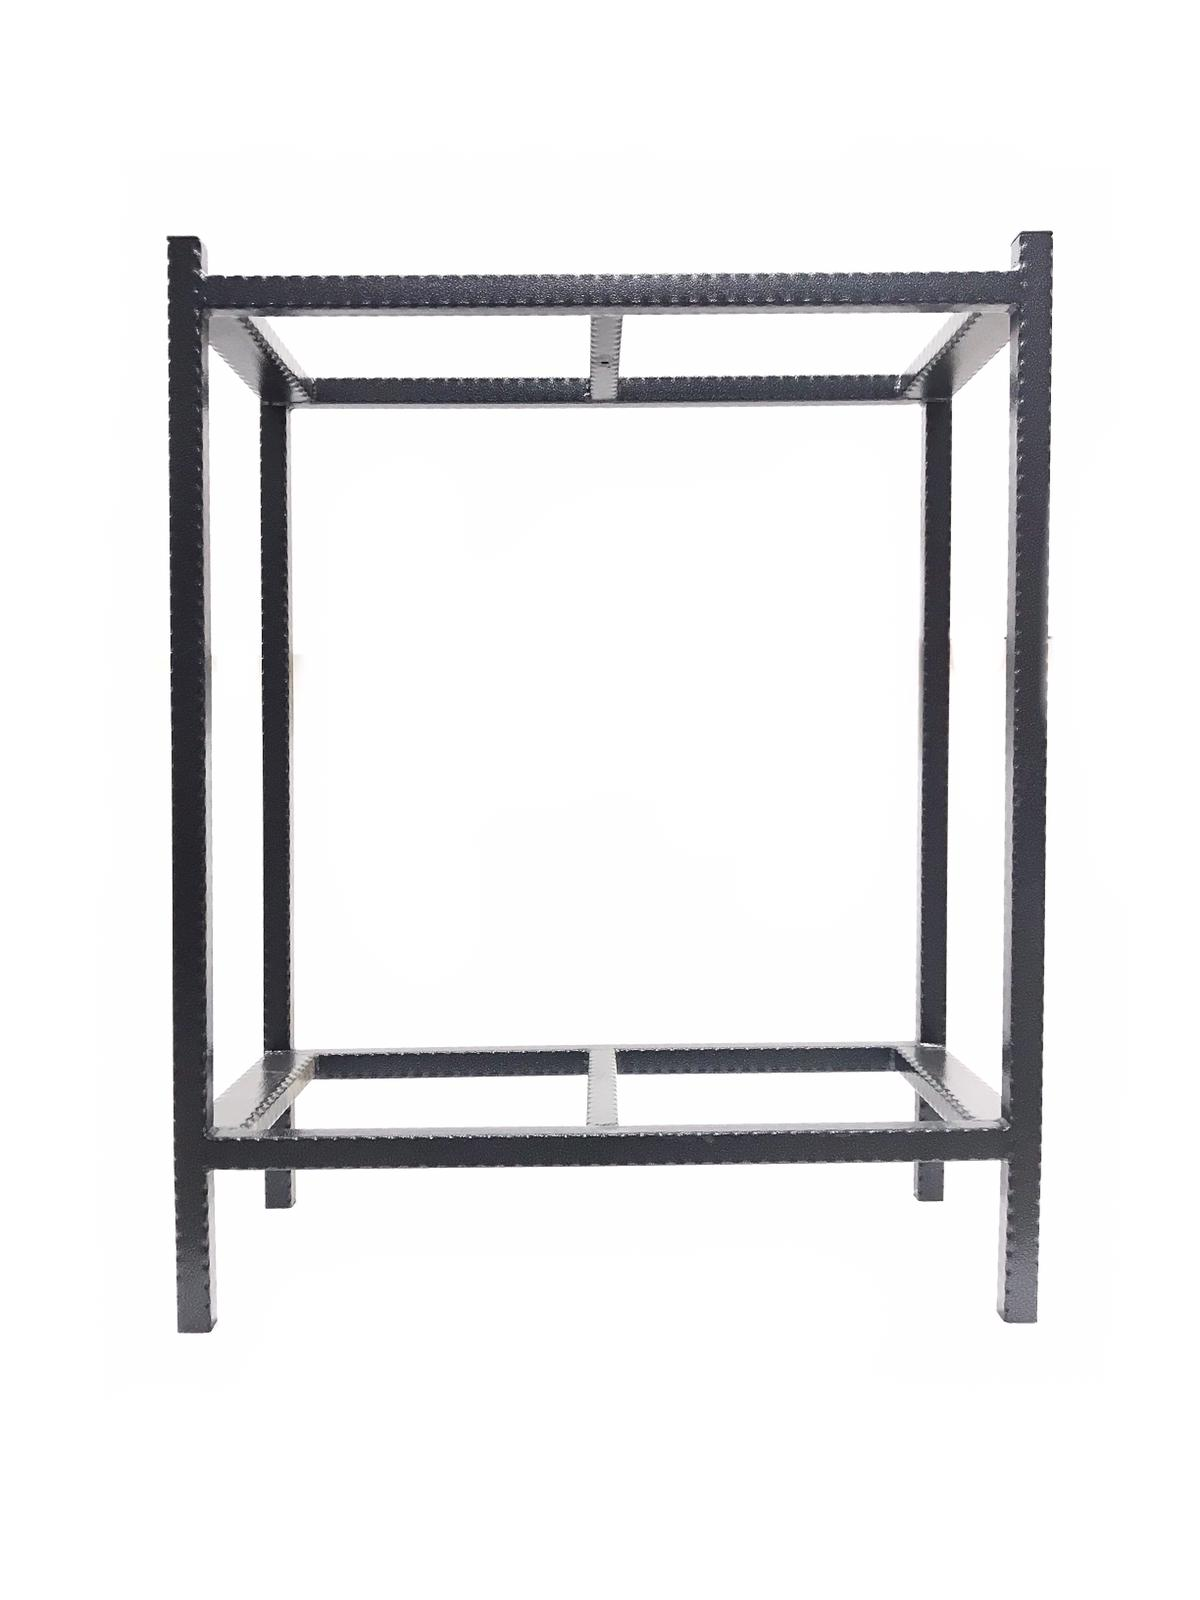 Aquarium Iron Stand (Wrought Iron)